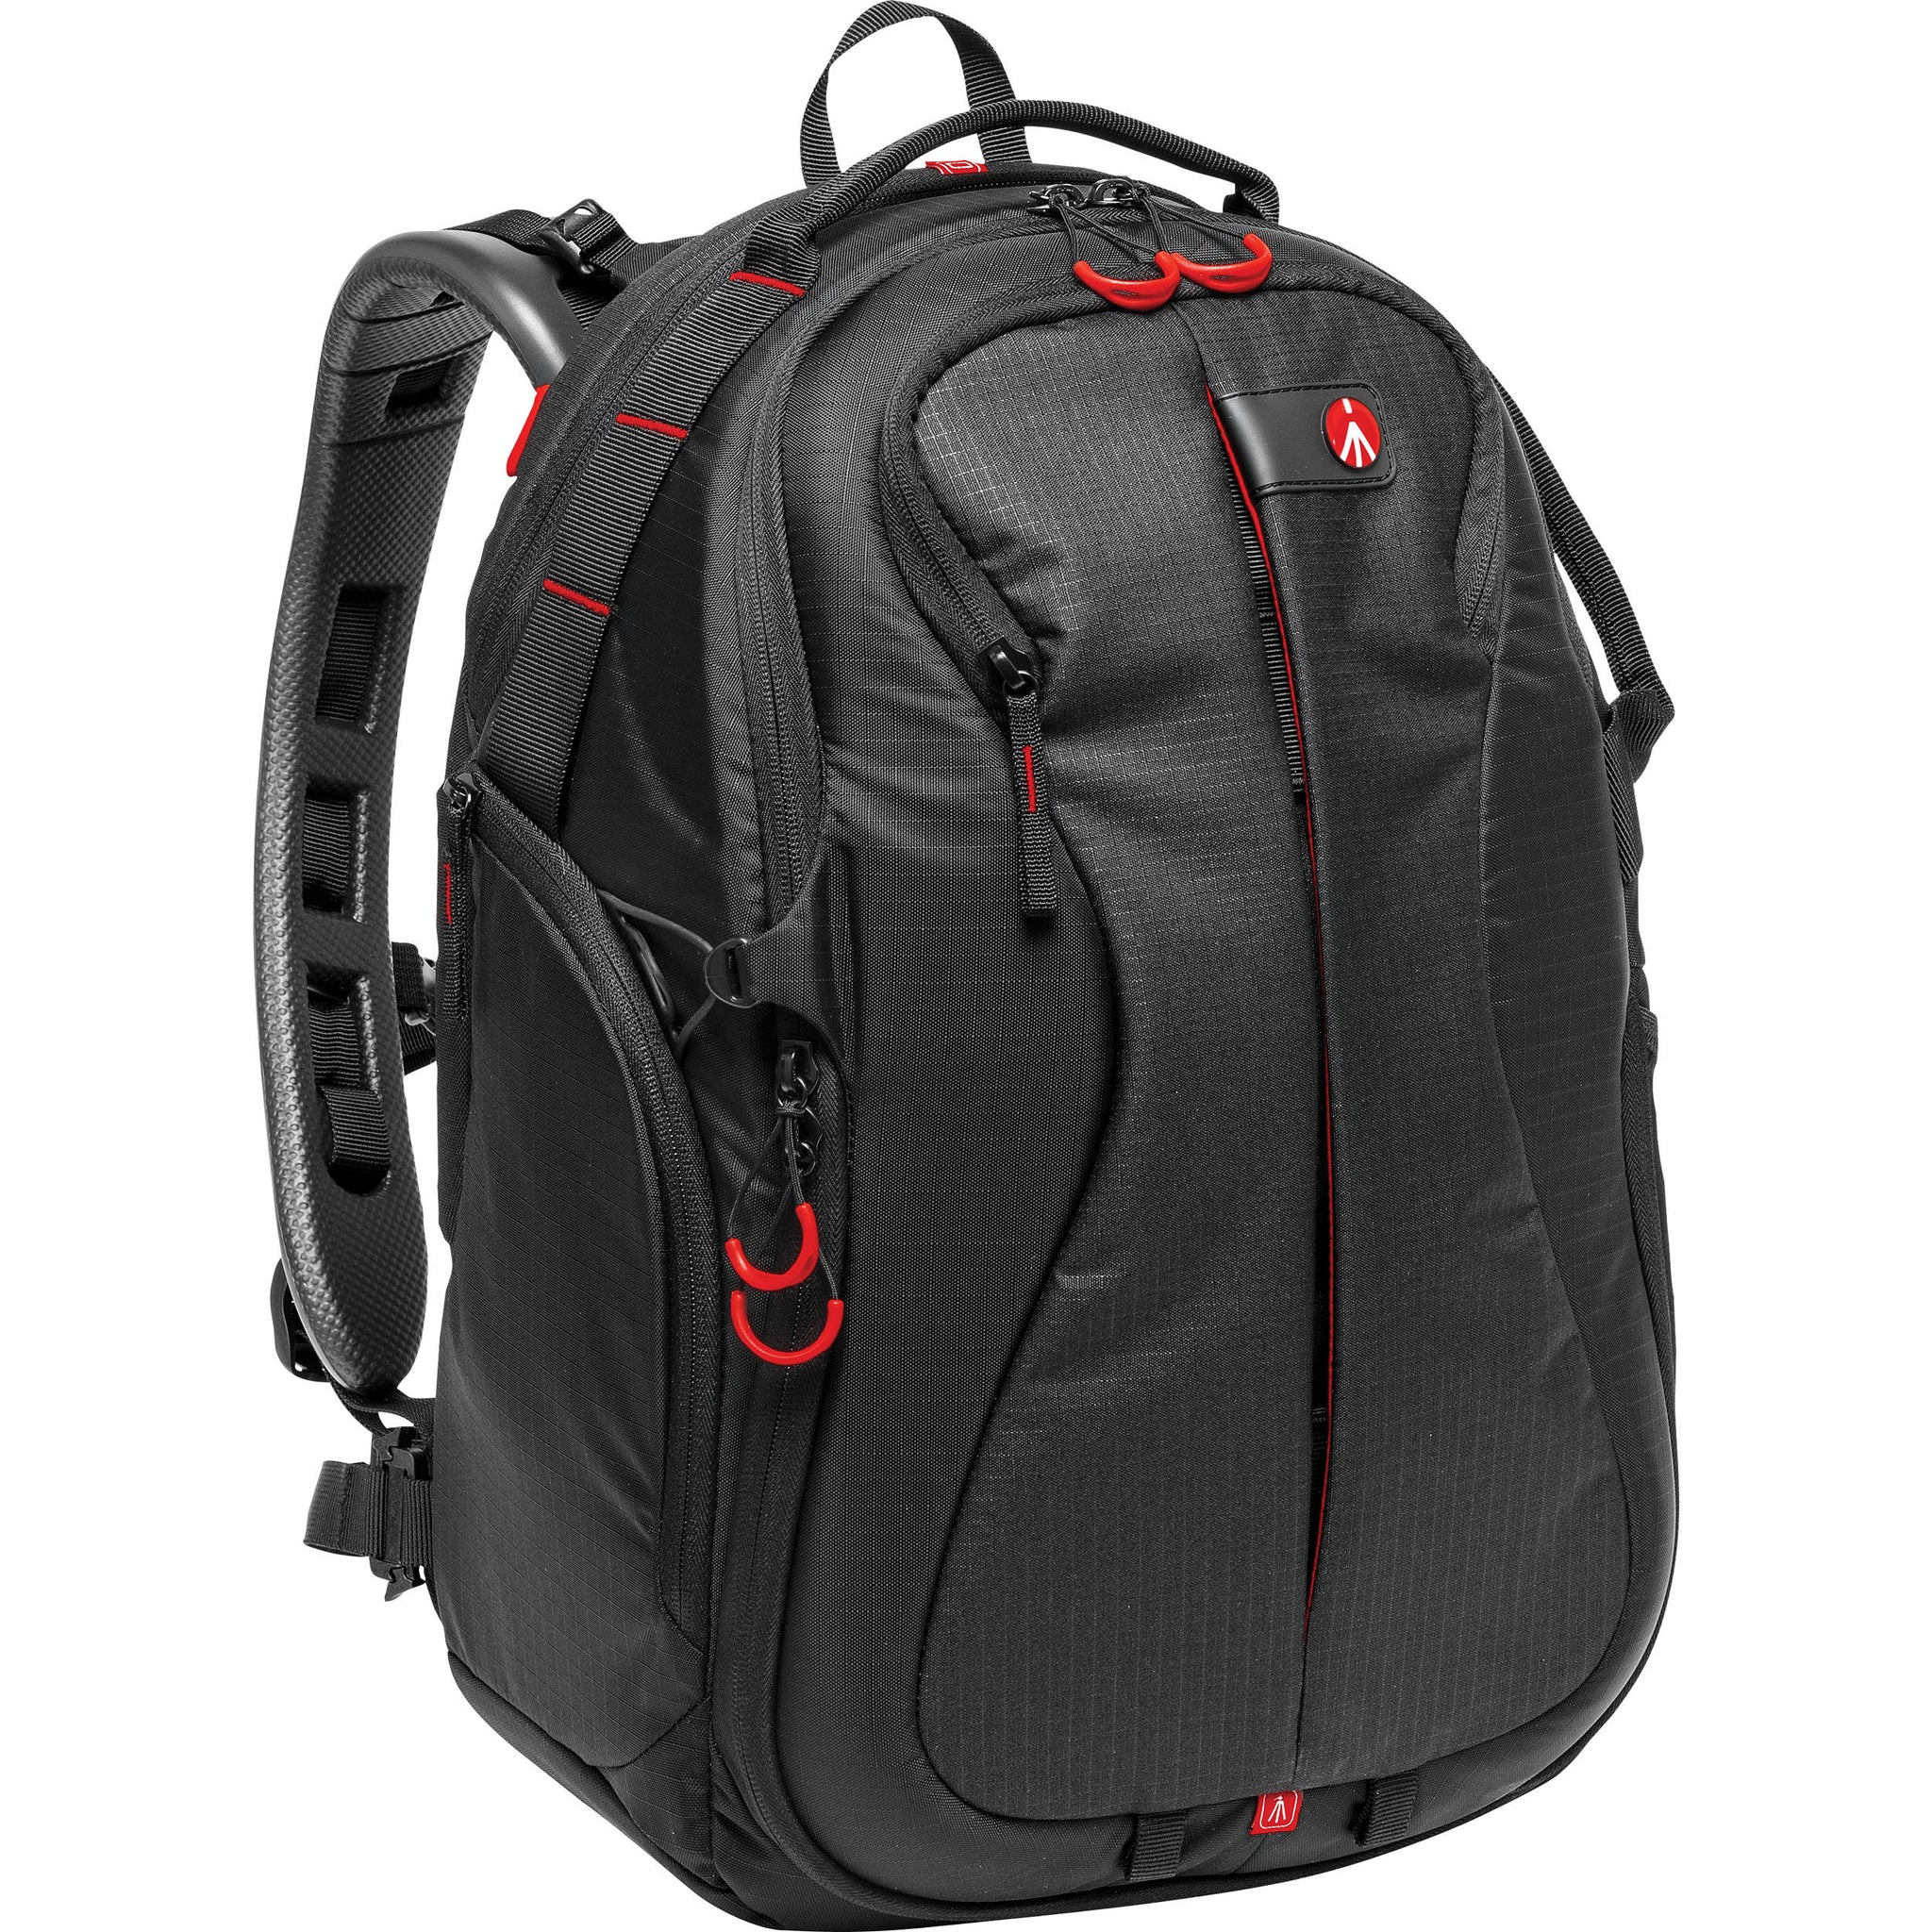 Manfrotto Minibee-120 PL Pro Light Camera Backpack